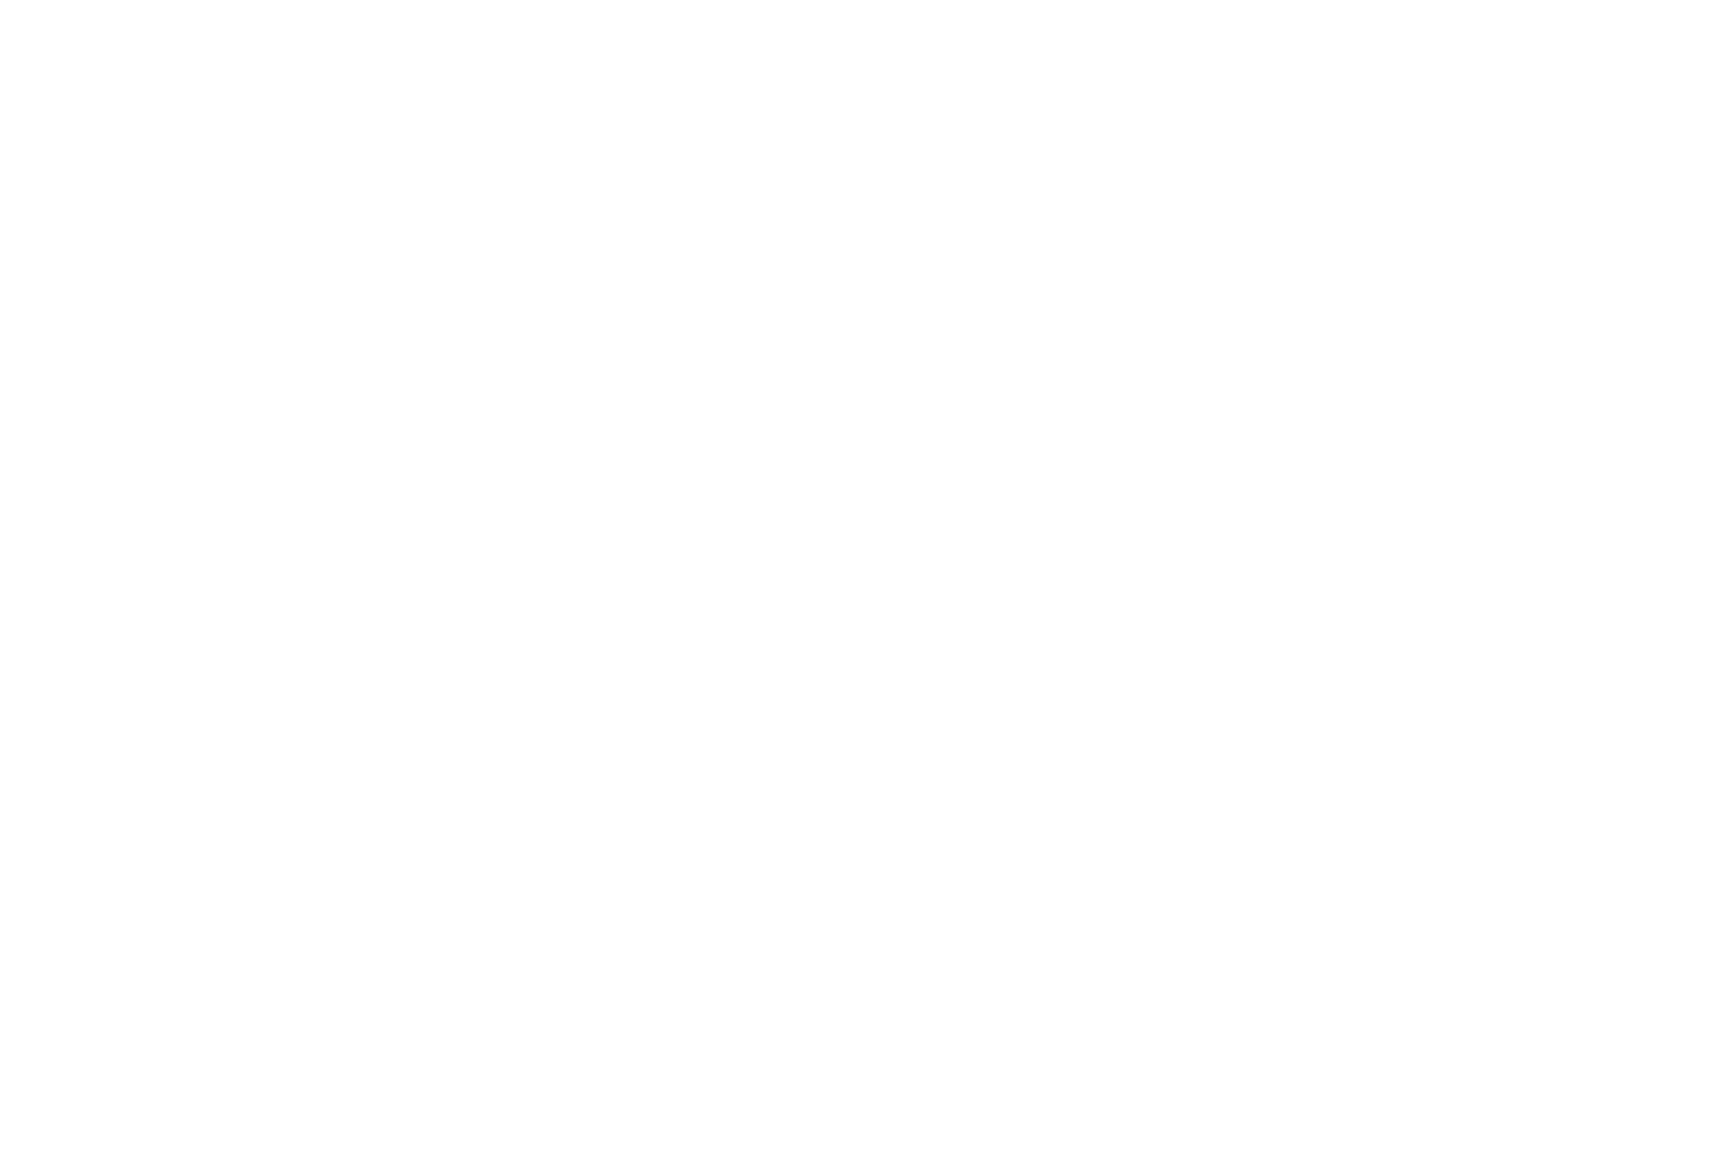 OFFICIAL SELECTION - New Hollywood Film Festival - 2013-2.png